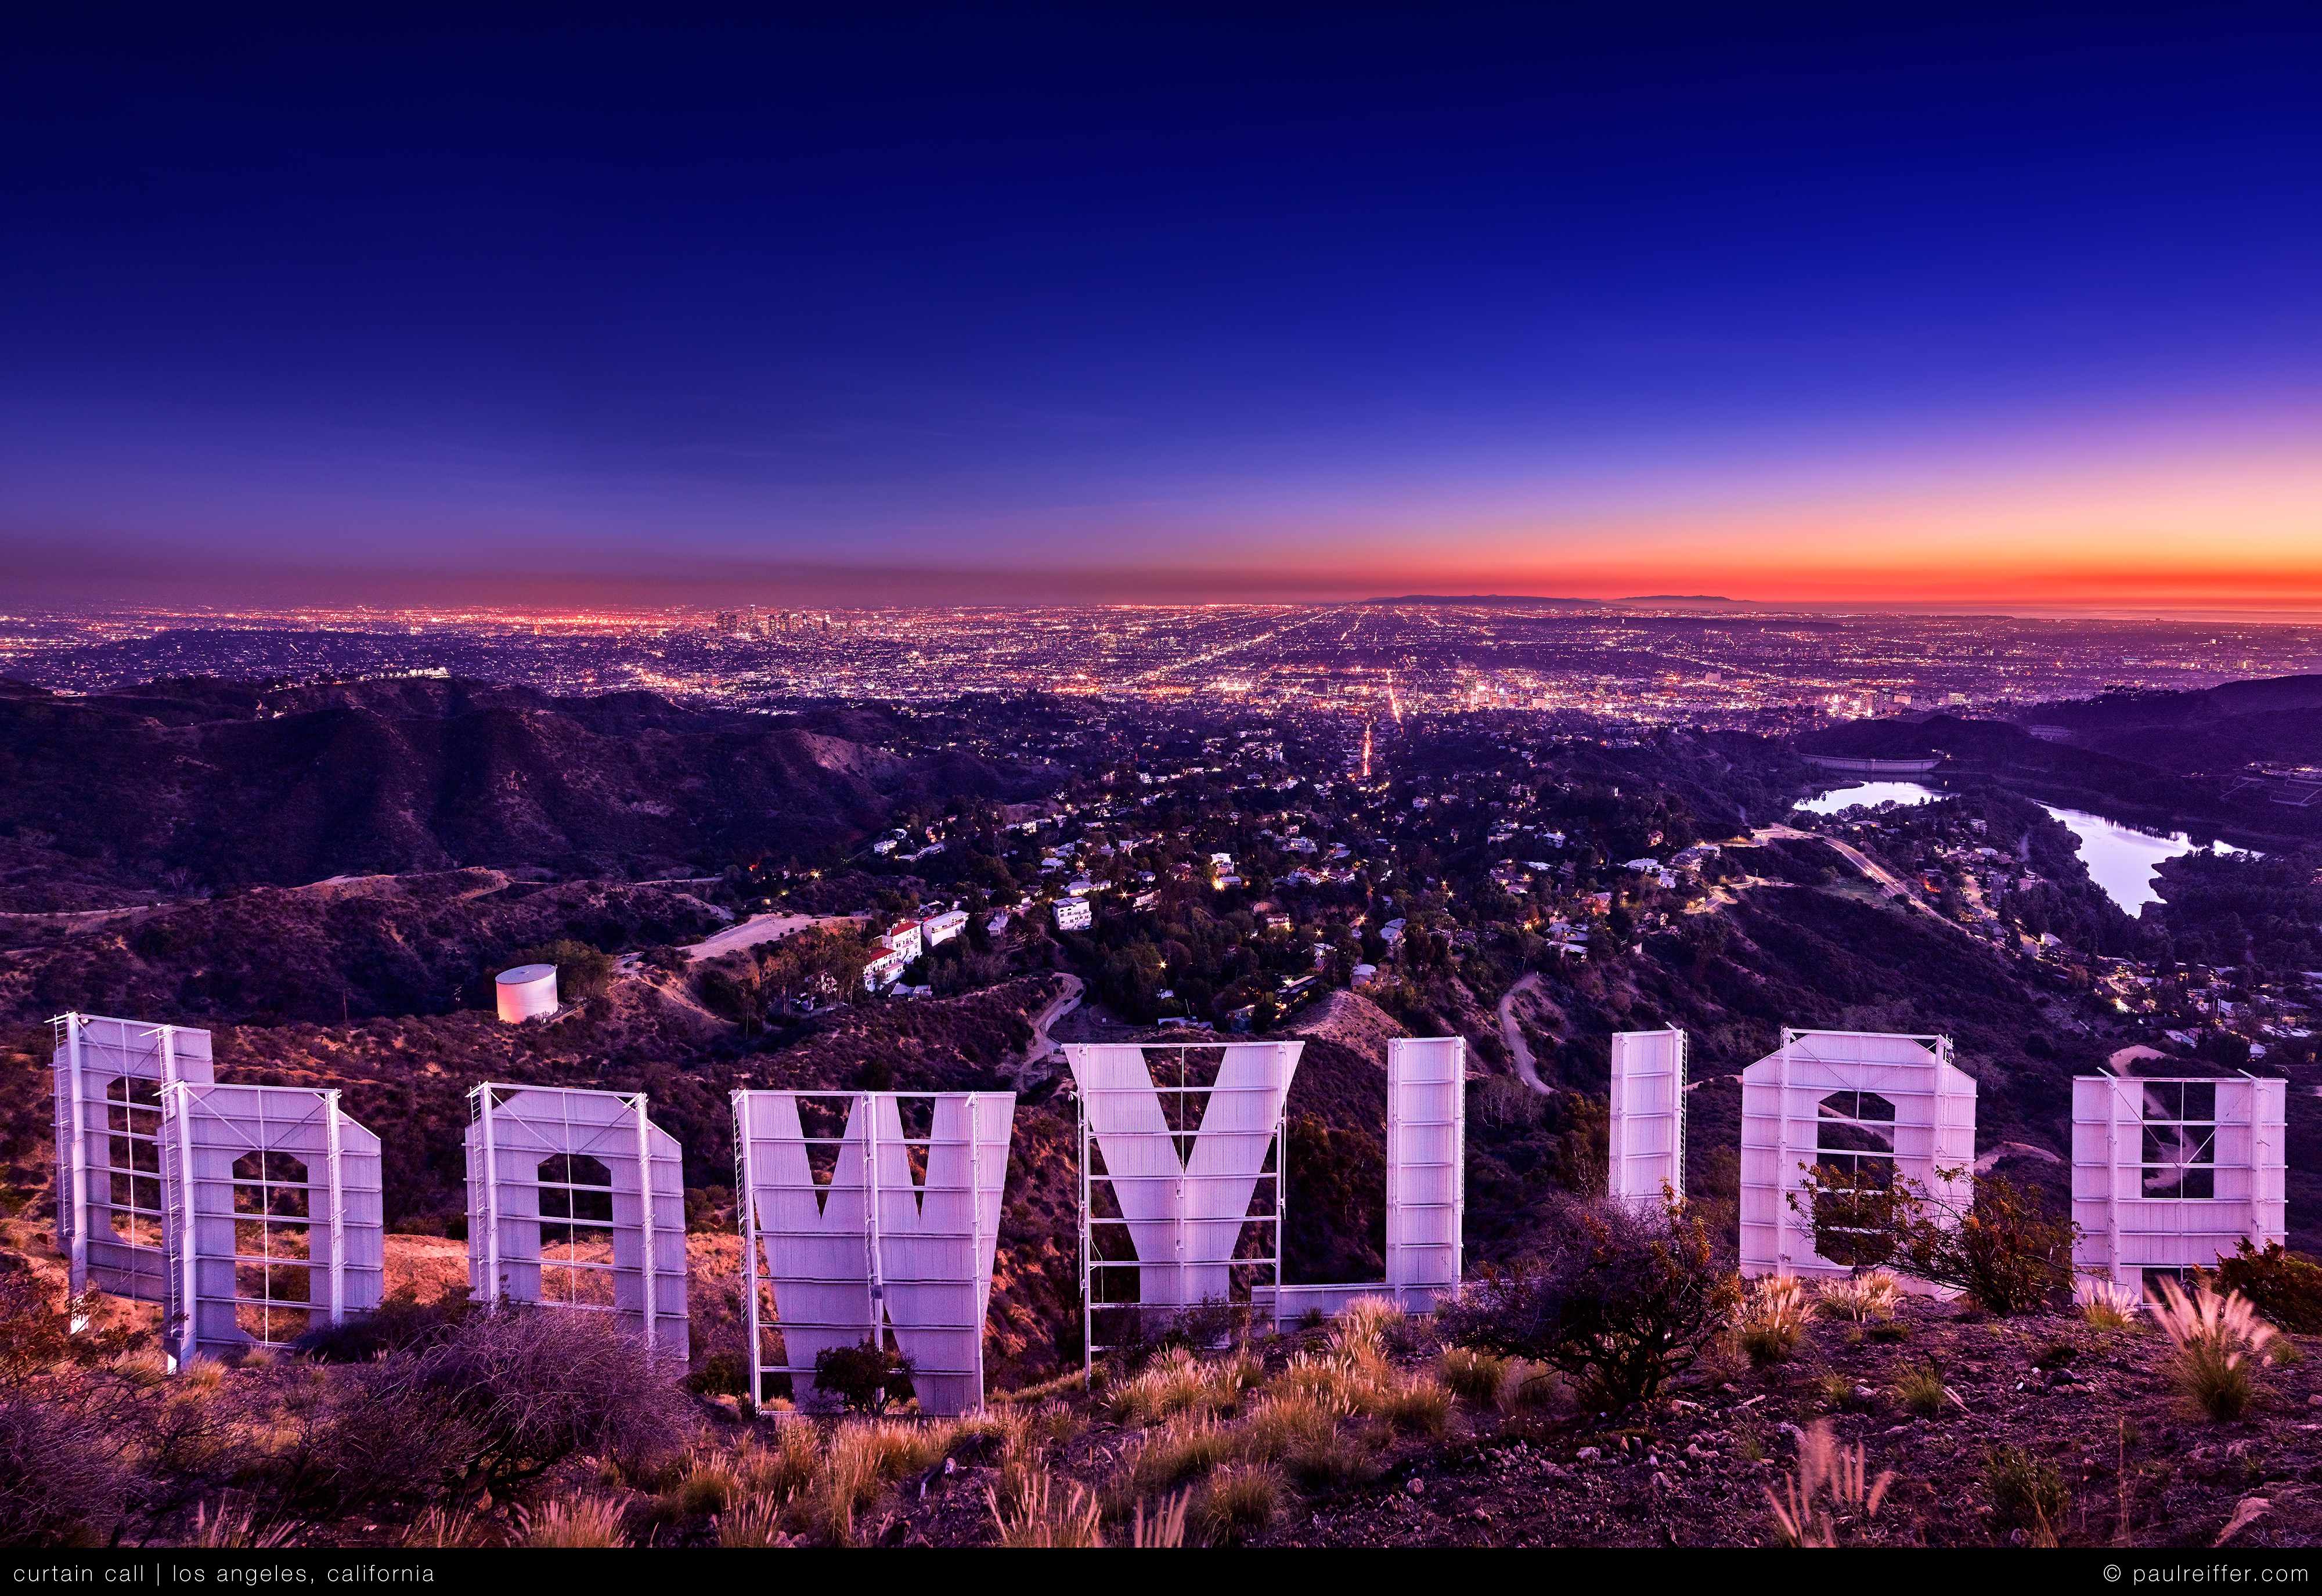 Curtain Call   download 61 Megapixel Hollywood Image 4000x2750